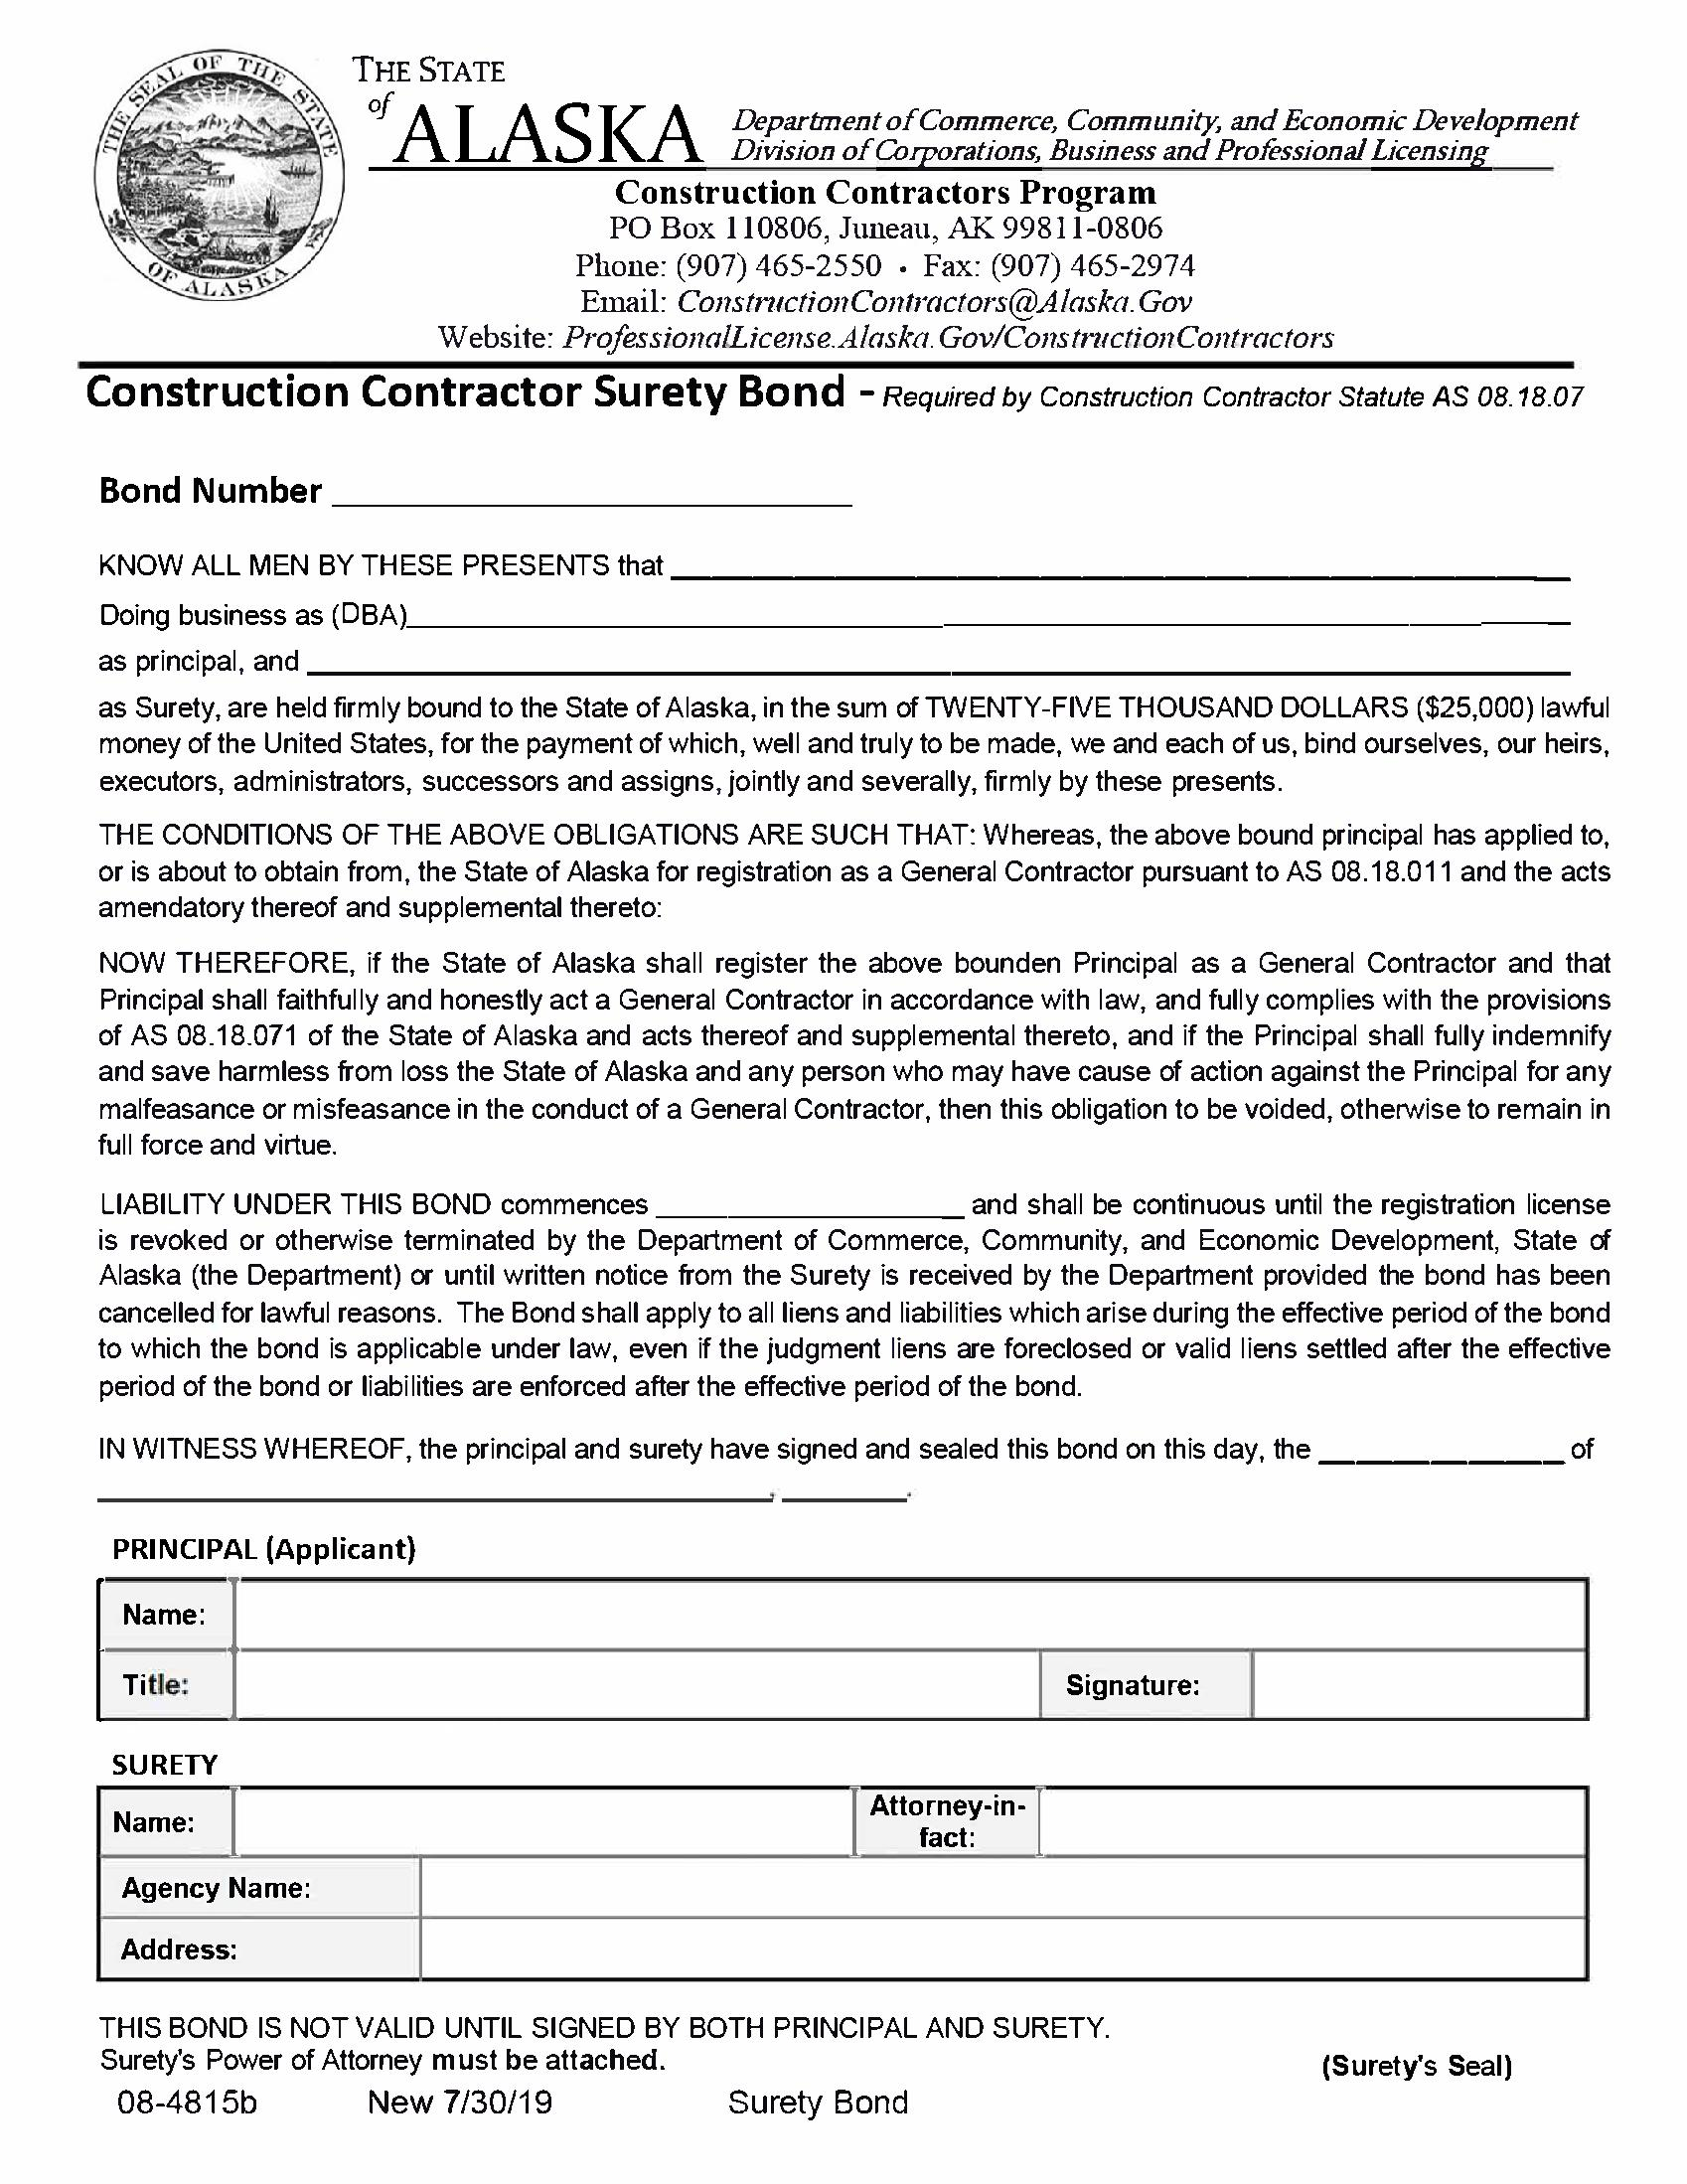 State of Alaska Construction Contractor sample image